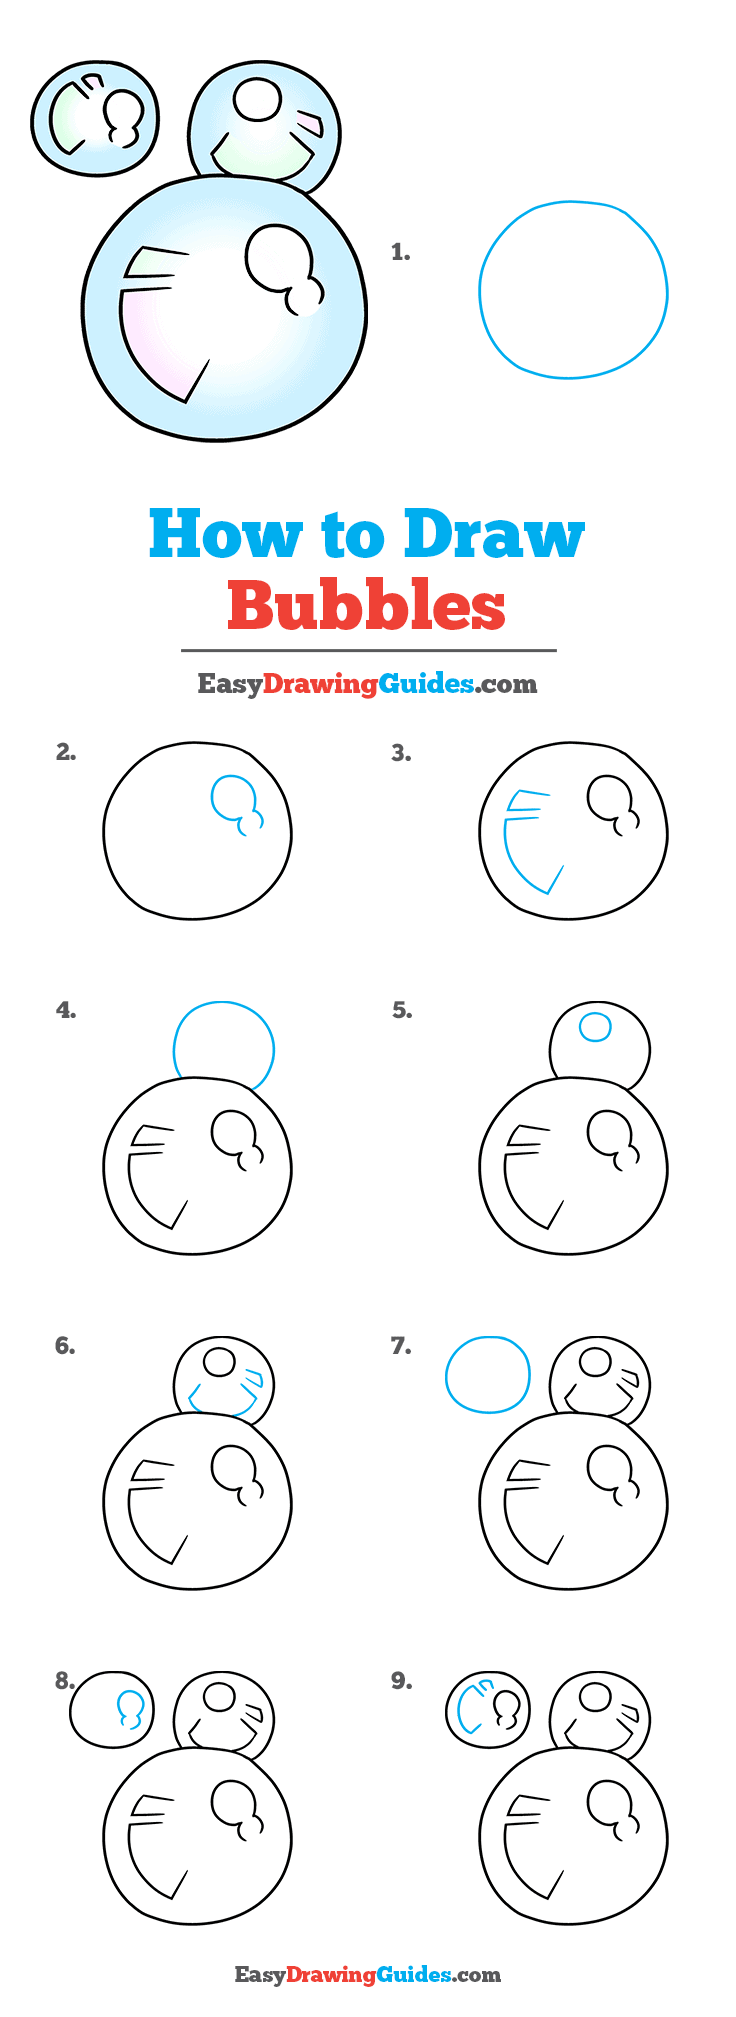 How to Draw Bubbles